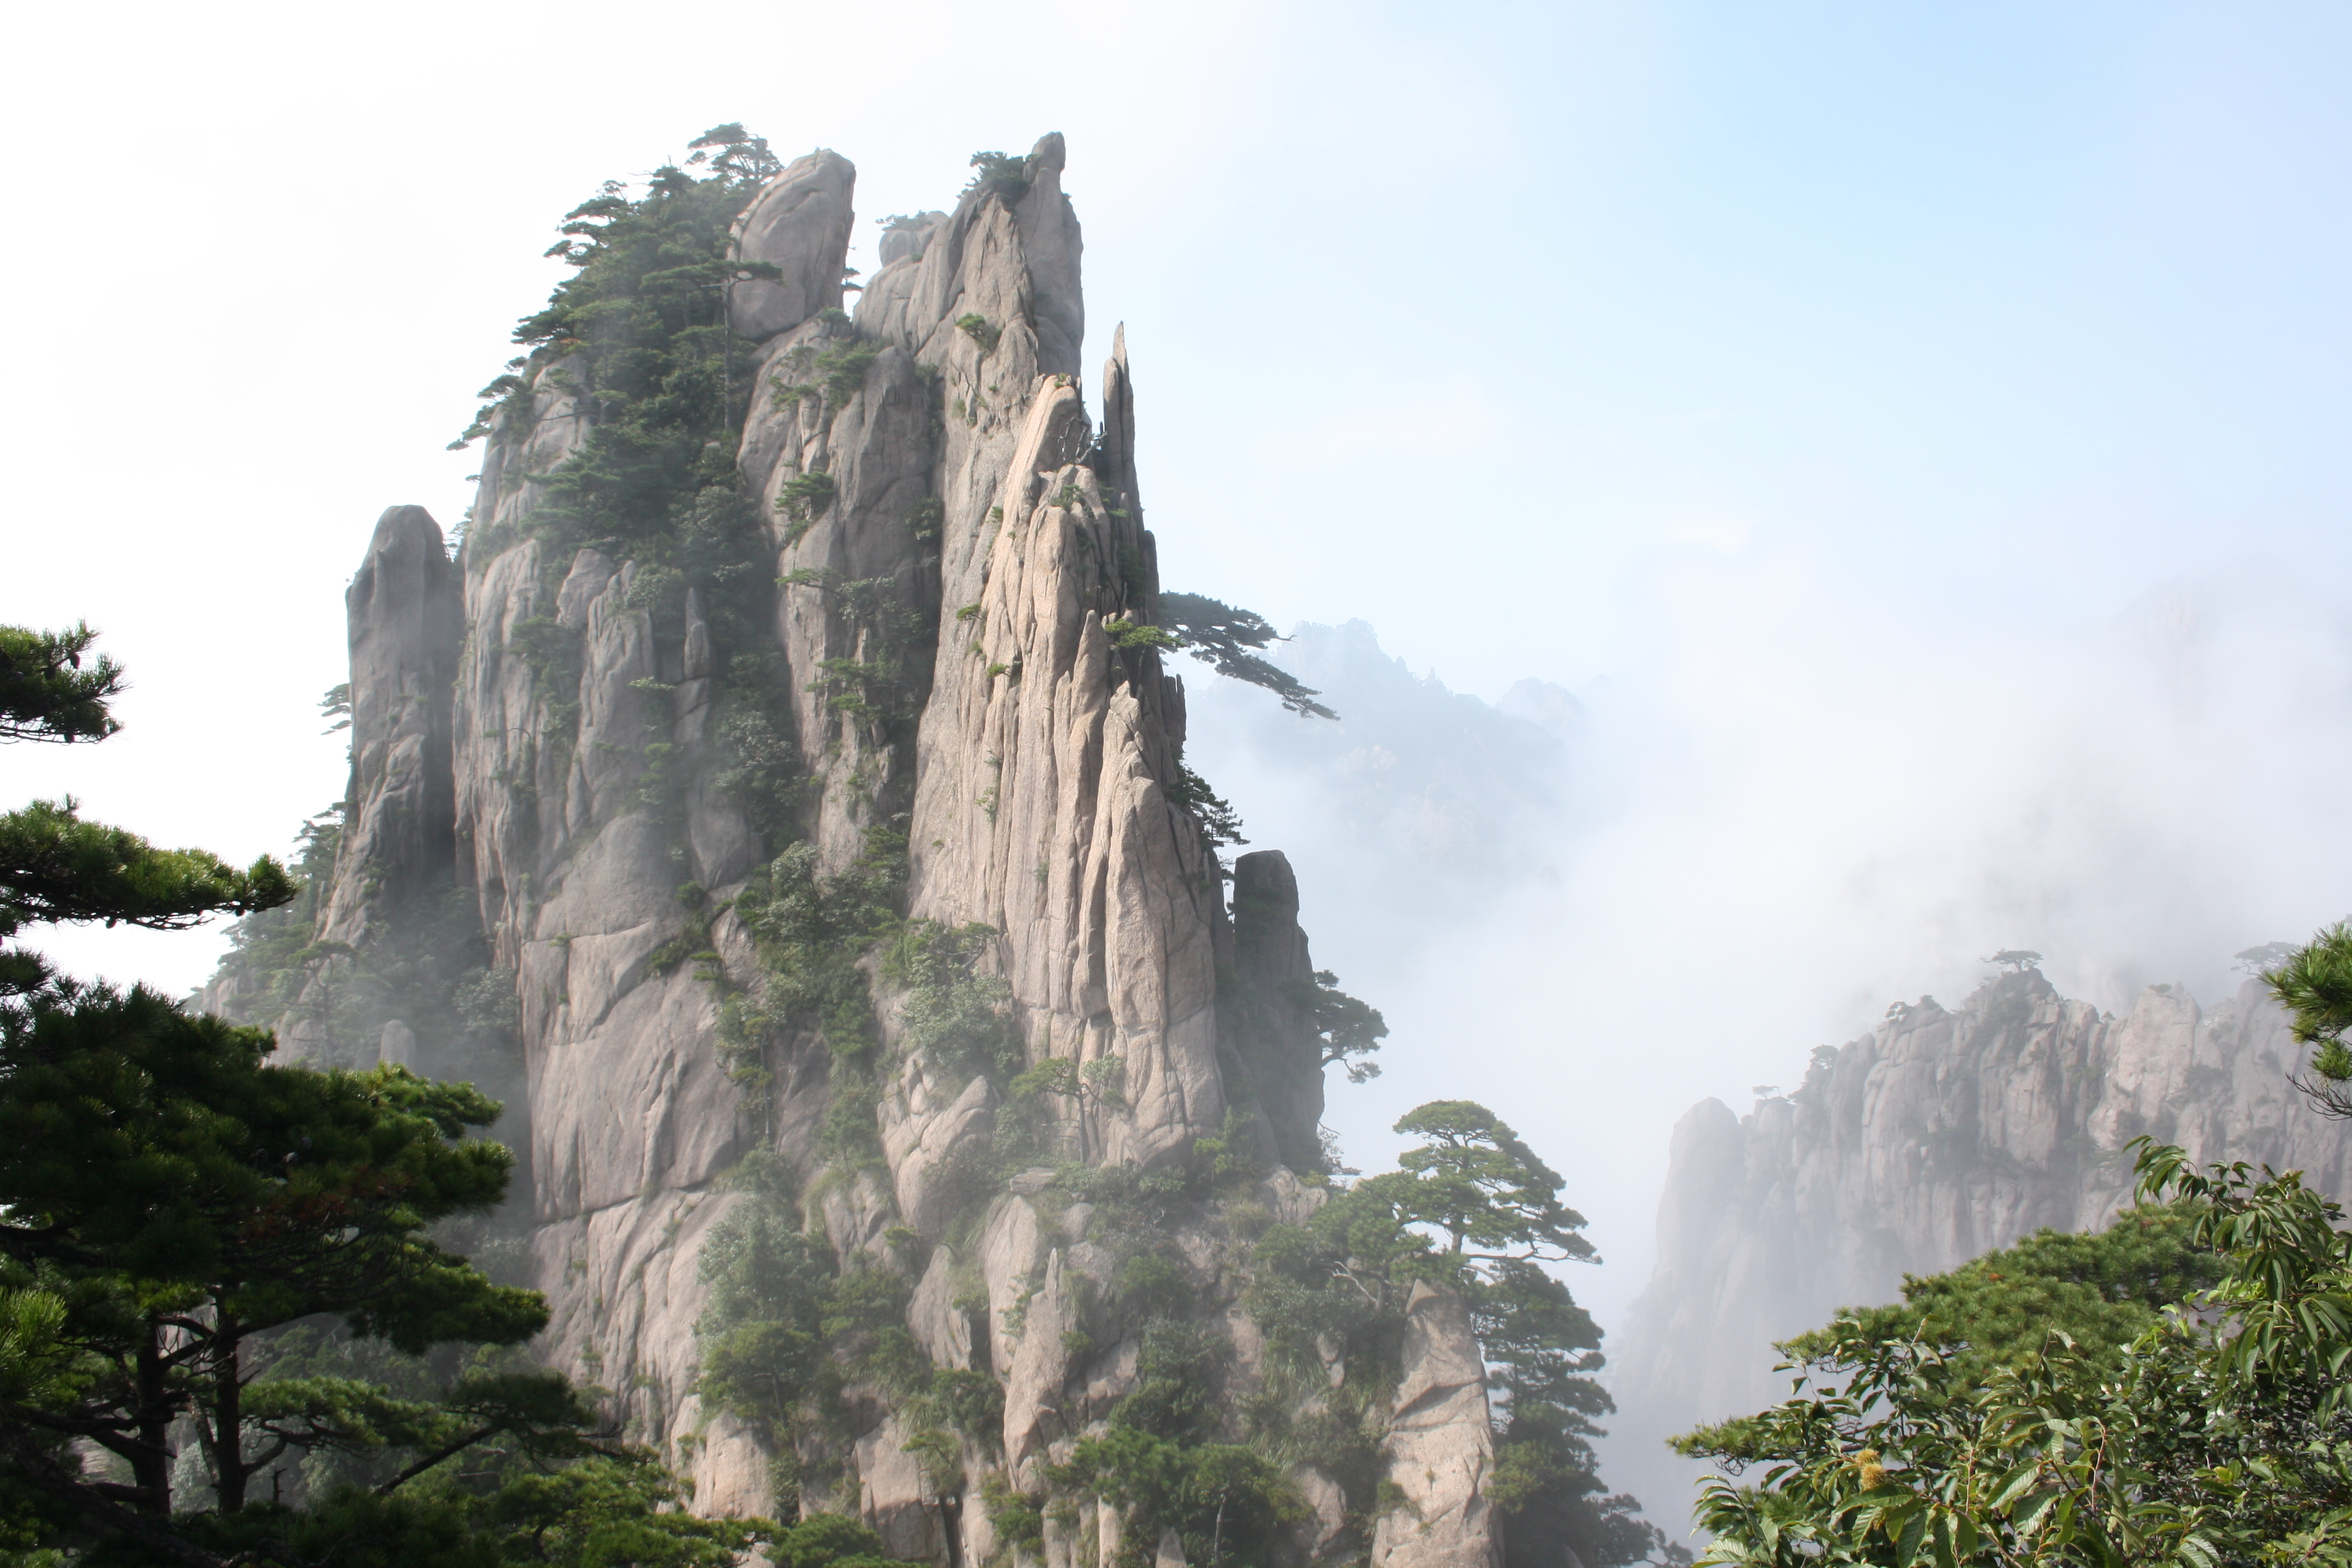 The Huang Shan mountains in China which inspired Pandora. Courtesy of Arne Hückelheim.